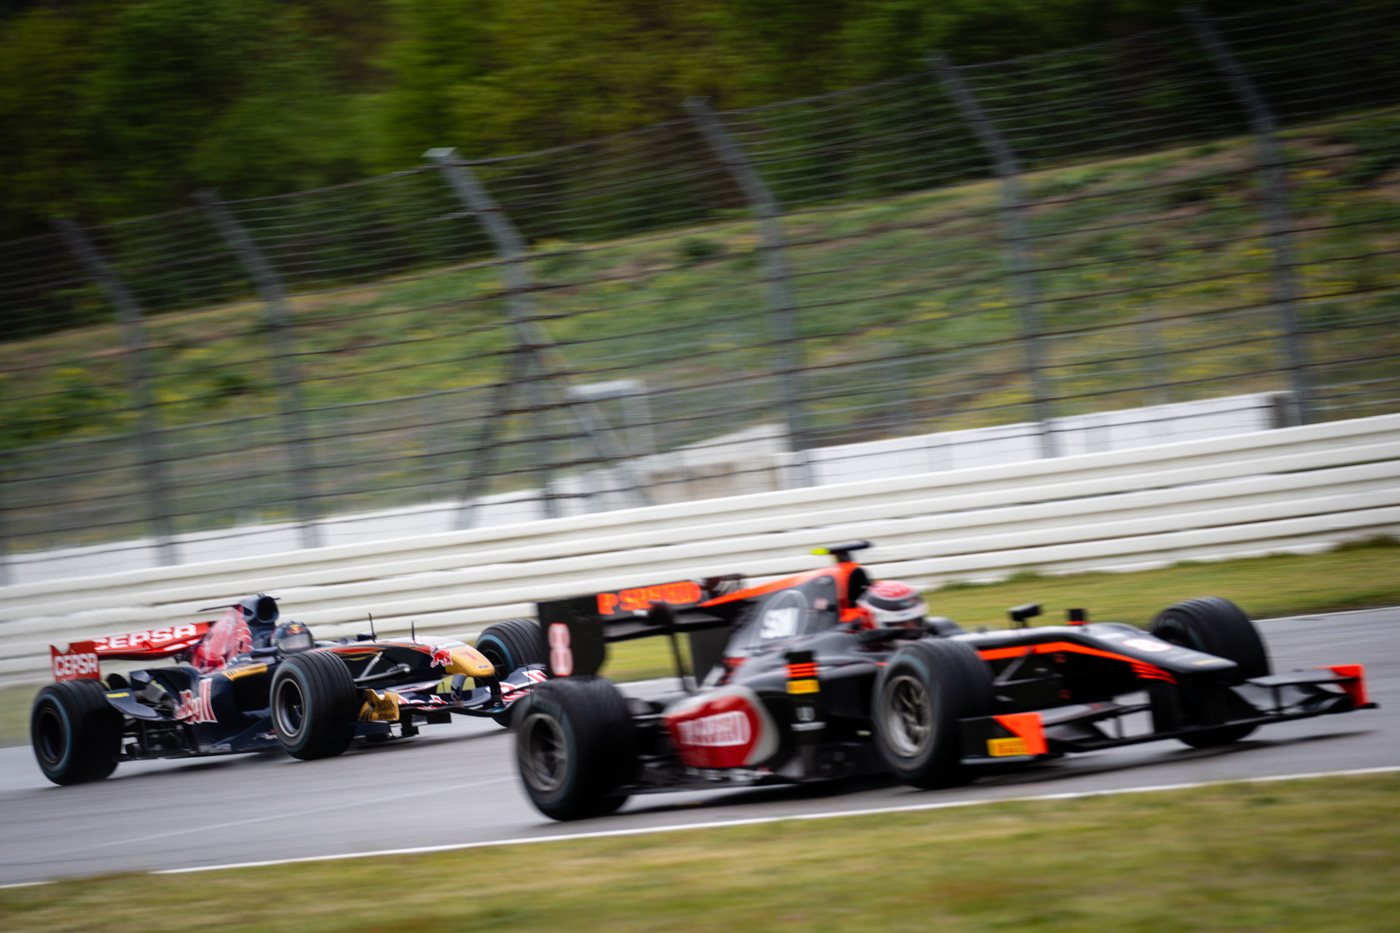 Phil Stratford in GP2-Judd, followed by Ingo Gerstl in his Toro Rosso F1